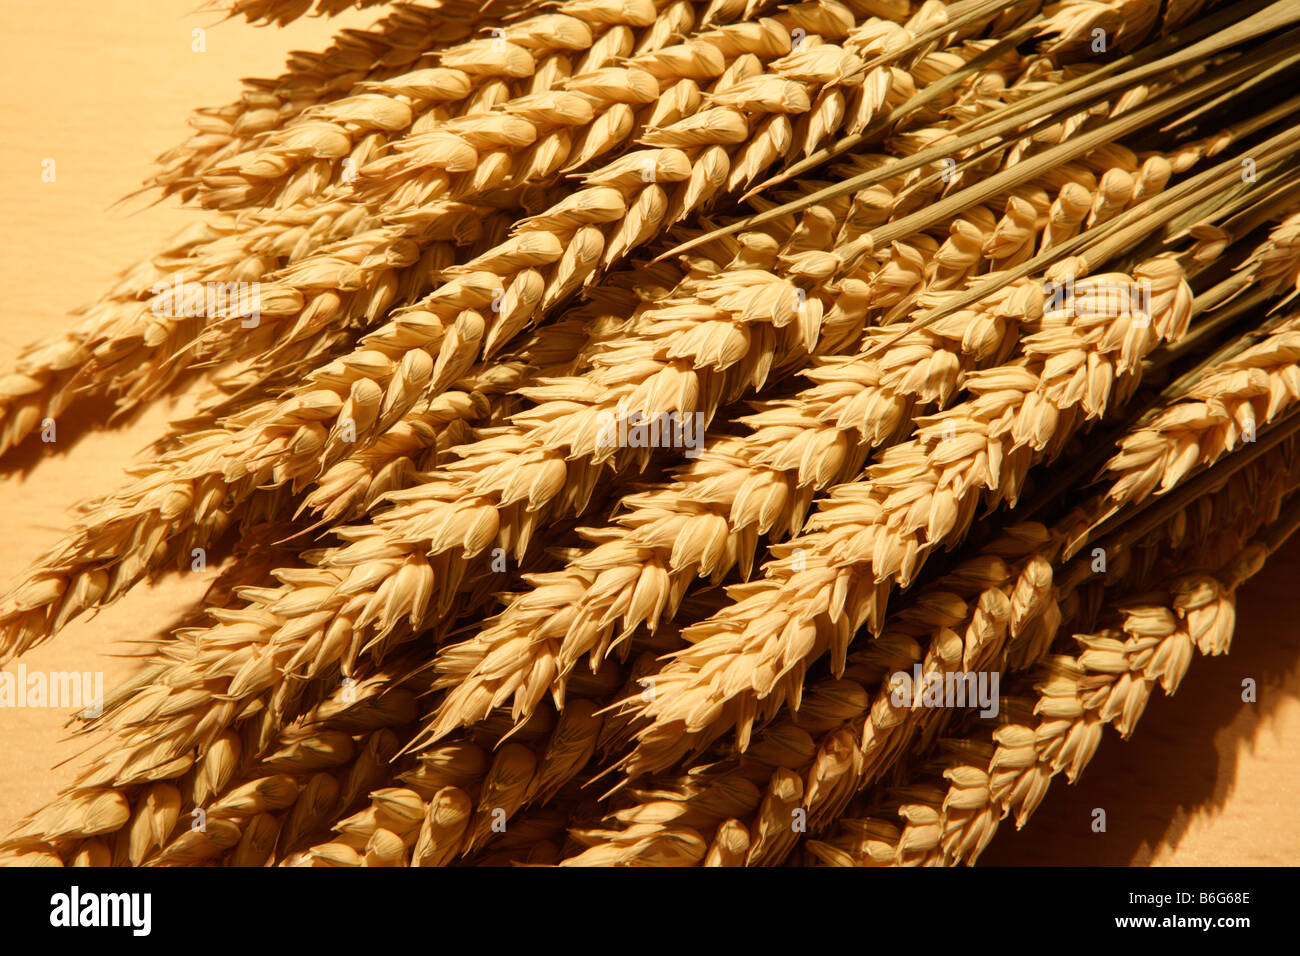 Wheat - Stock Image